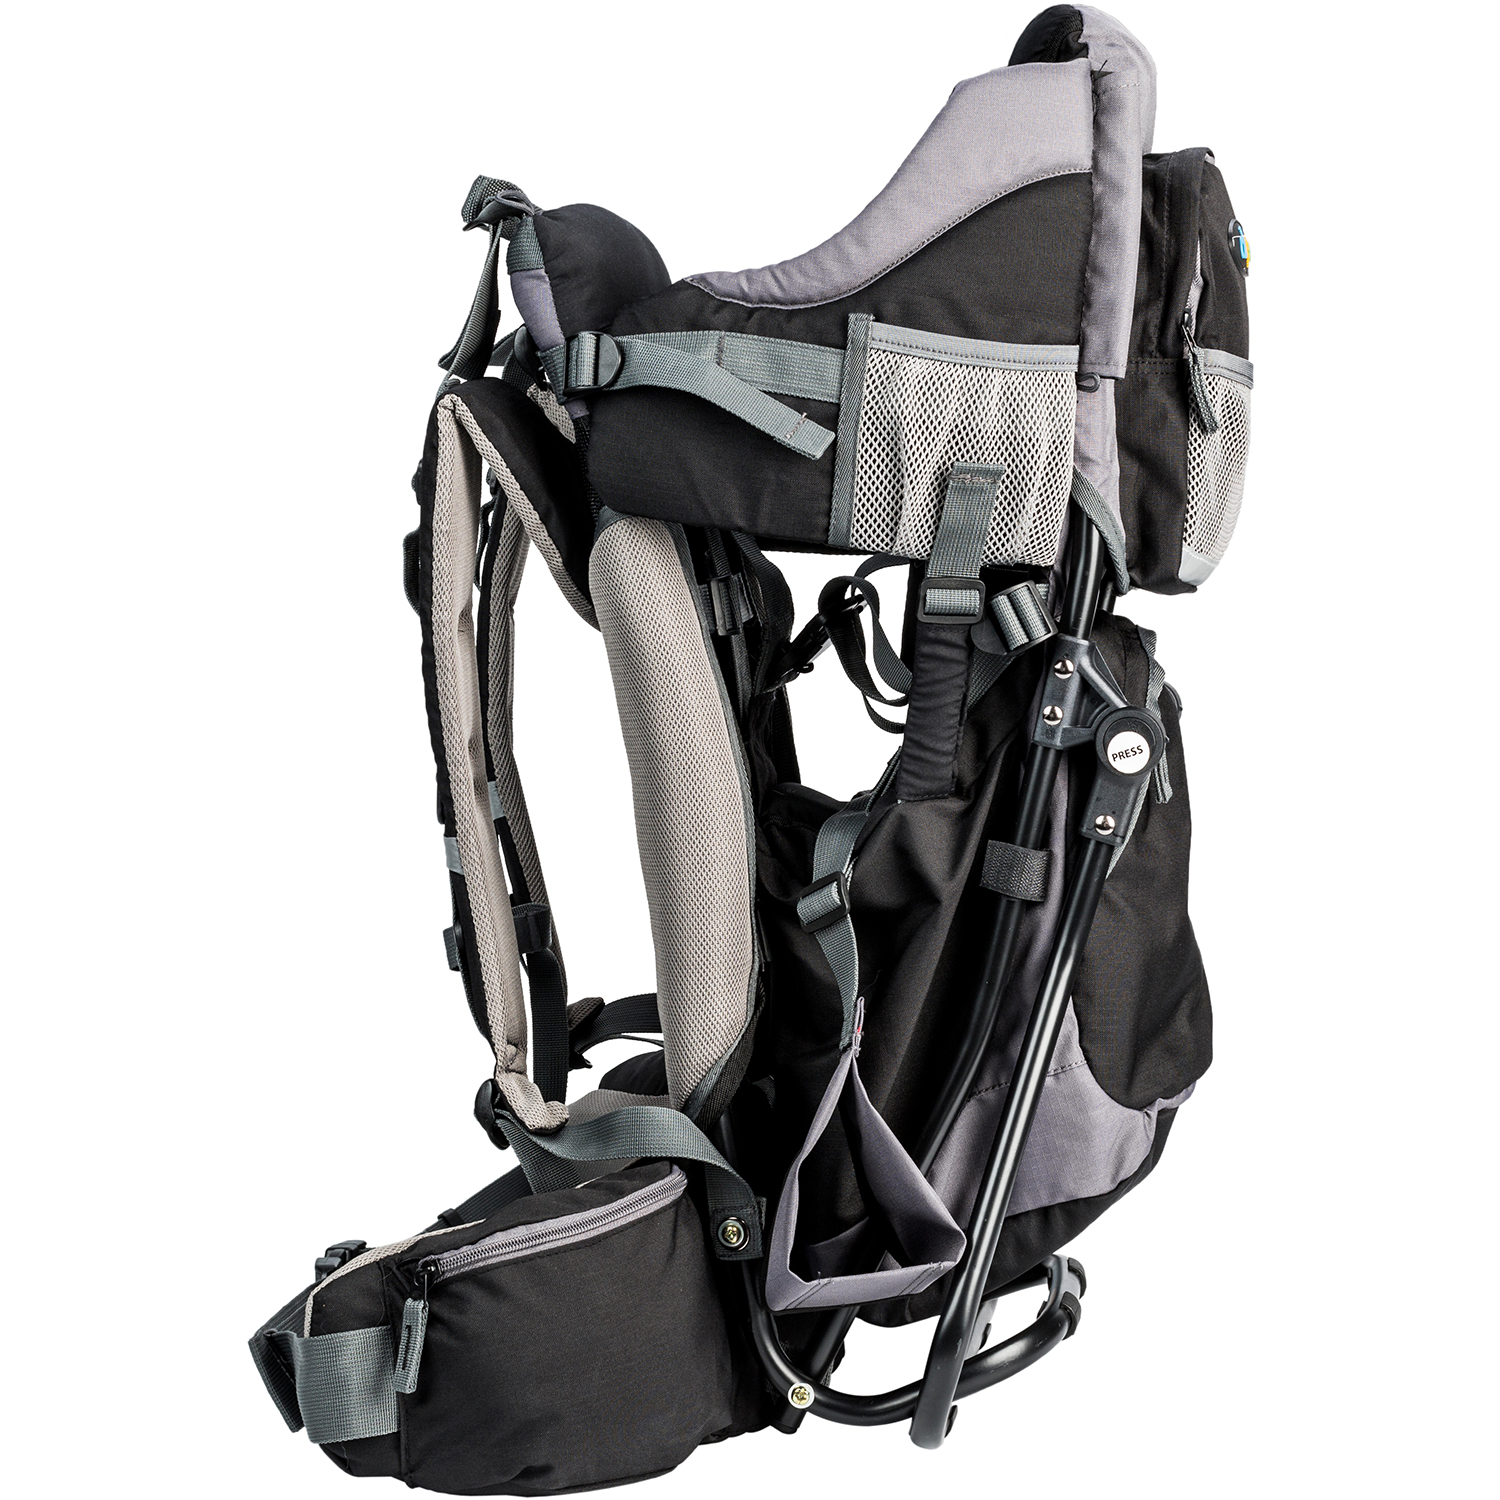 aa5ed8aa7ec Clevr Cross Country Baby Backpack Hiking Carrier with Stand and Sun Shade  Visor Child Kid Toddler